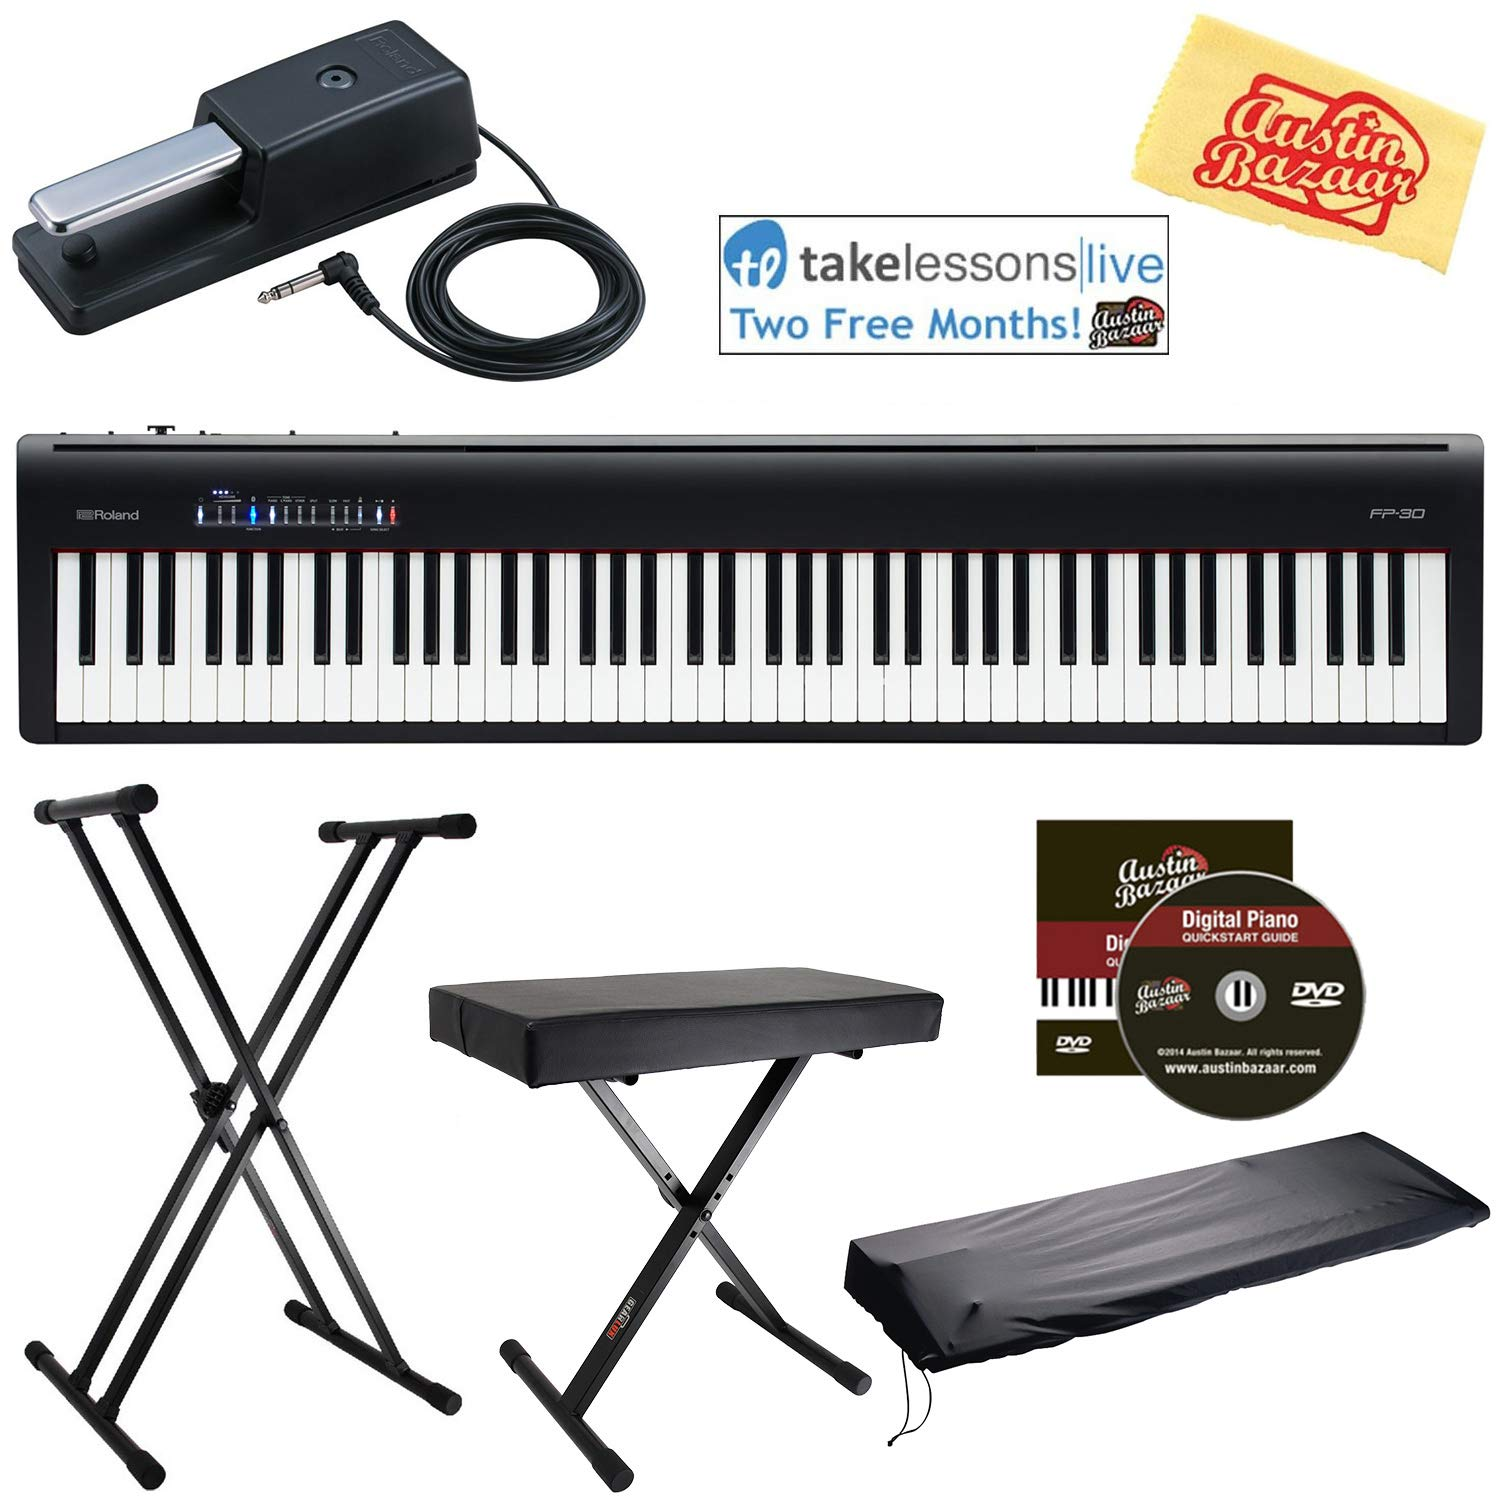 Roland FP-30 Digital Piano - Black Bundle with Roland DP-10 Damper Pedal, Adjustable Stand, Bench, Dust Cover, Online Lessons, Austin Bazaar Instructional DVD, and Polishing Cloth by Roland